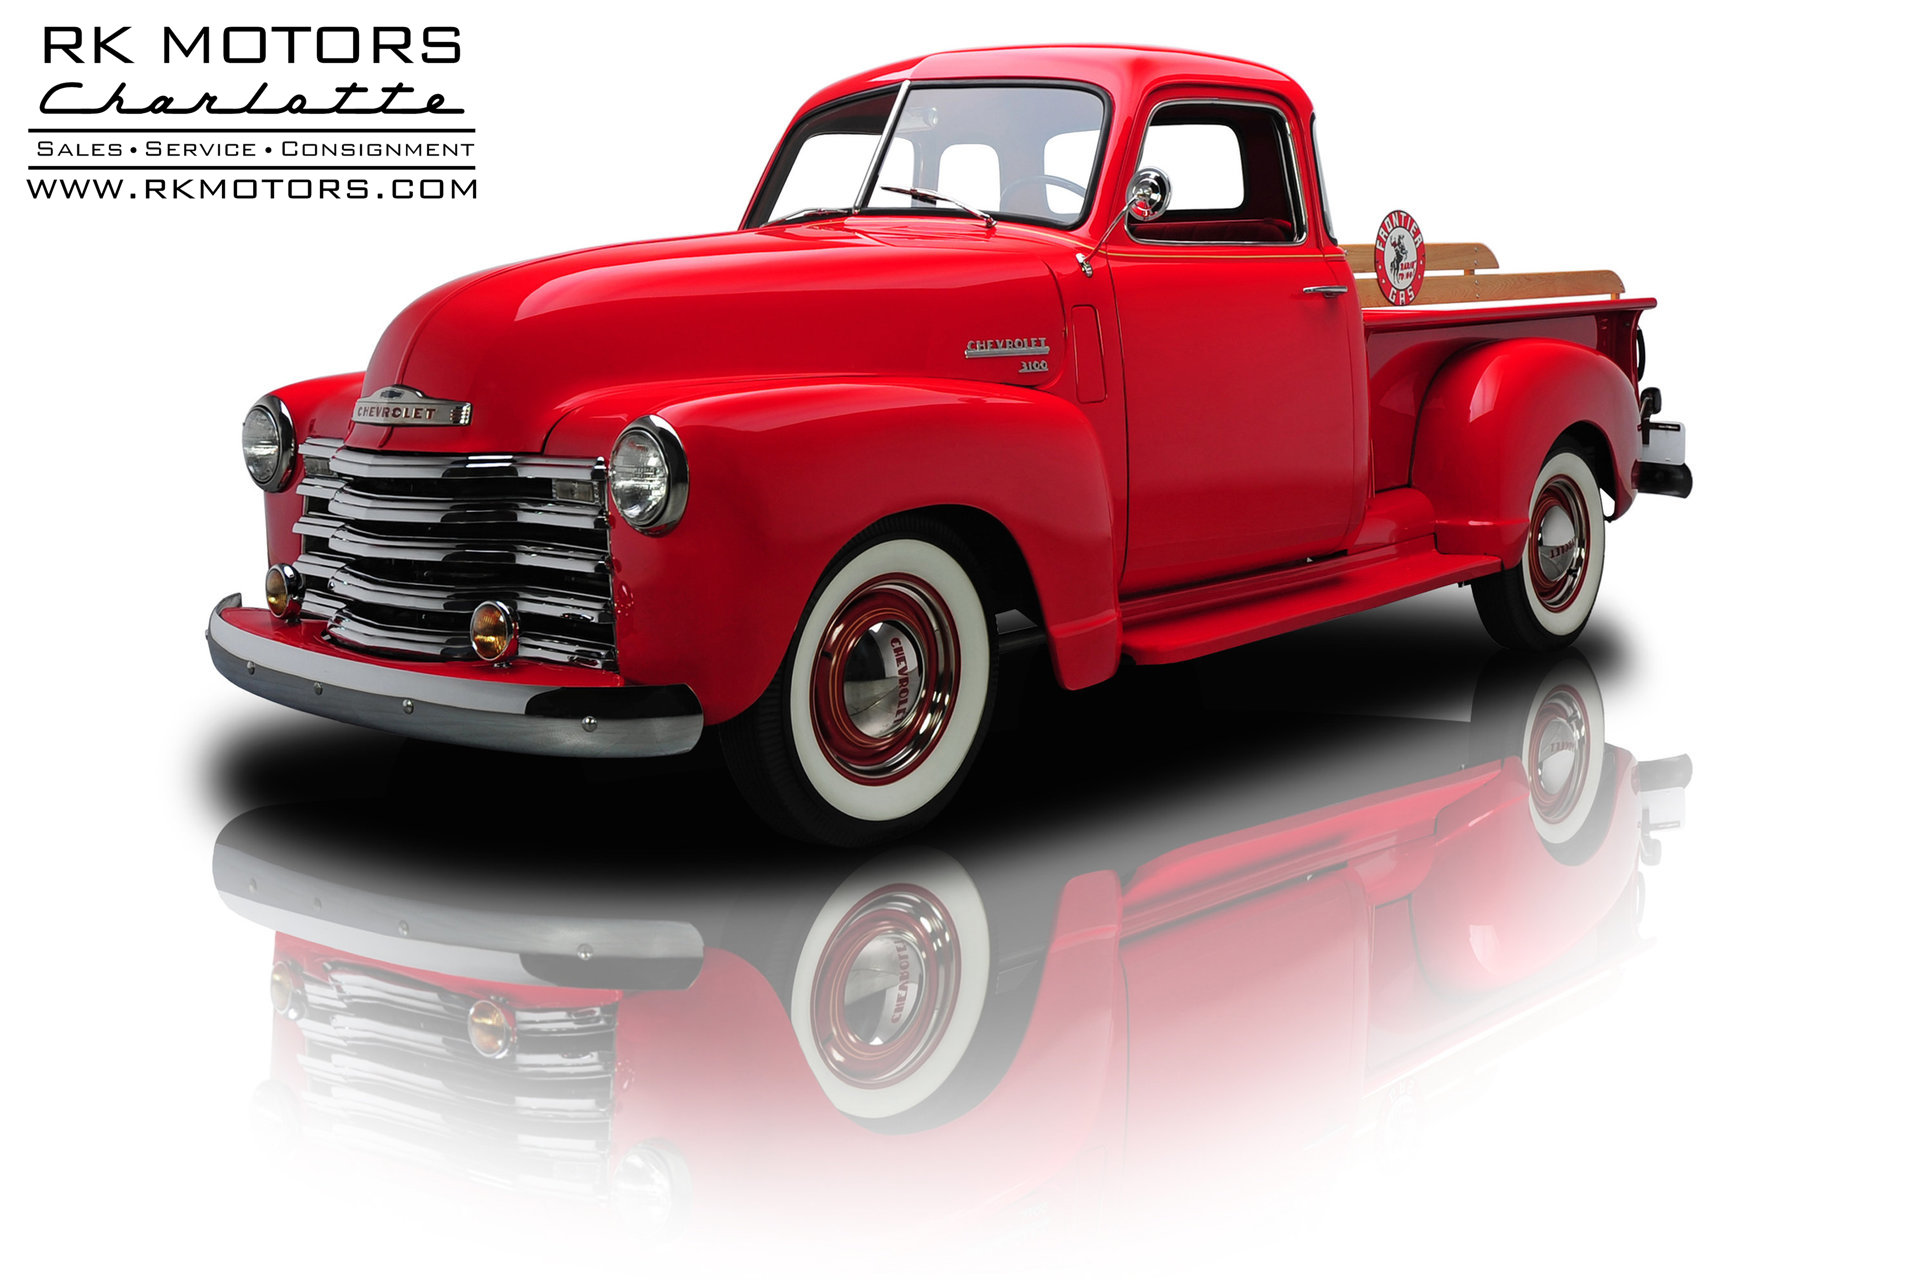 132822 1950 Chevrolet 3100 Rk Motors Classic Cars For Sale 1949 Chevy Truck Paint Colors